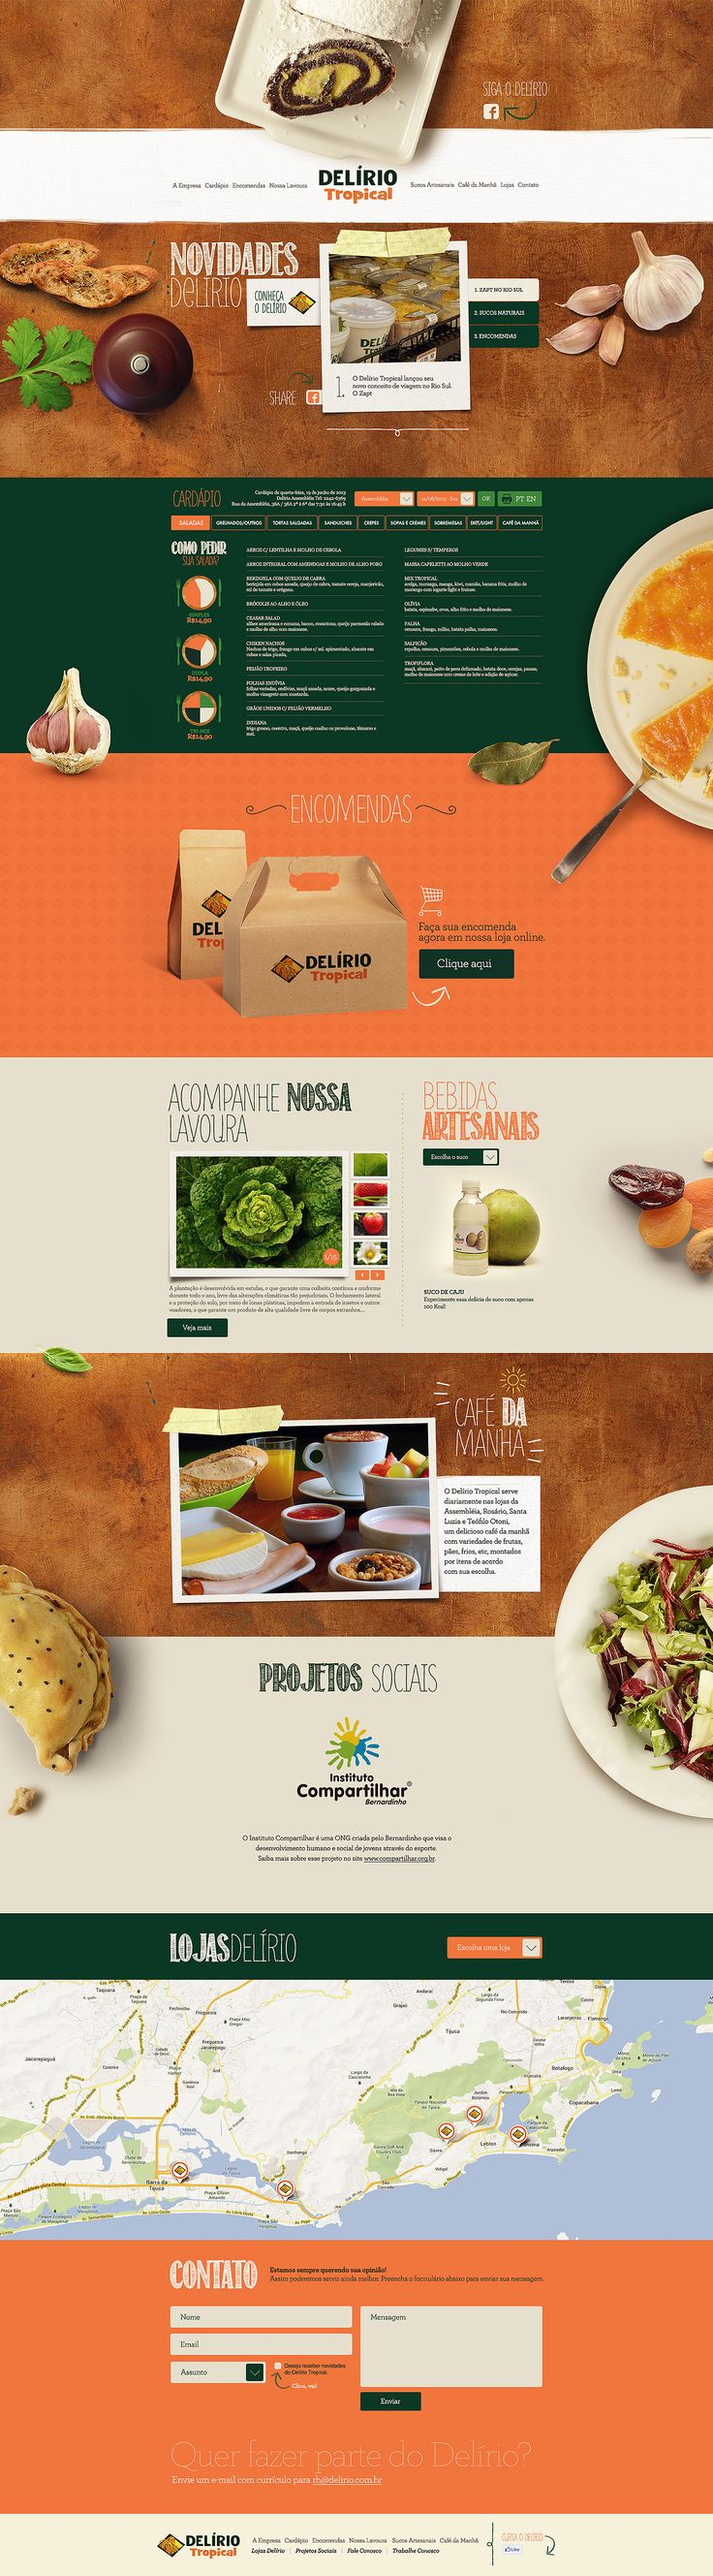 Sometimes a simple color palette that compliments your featured products is the only answer. #webdesign #colorpalette